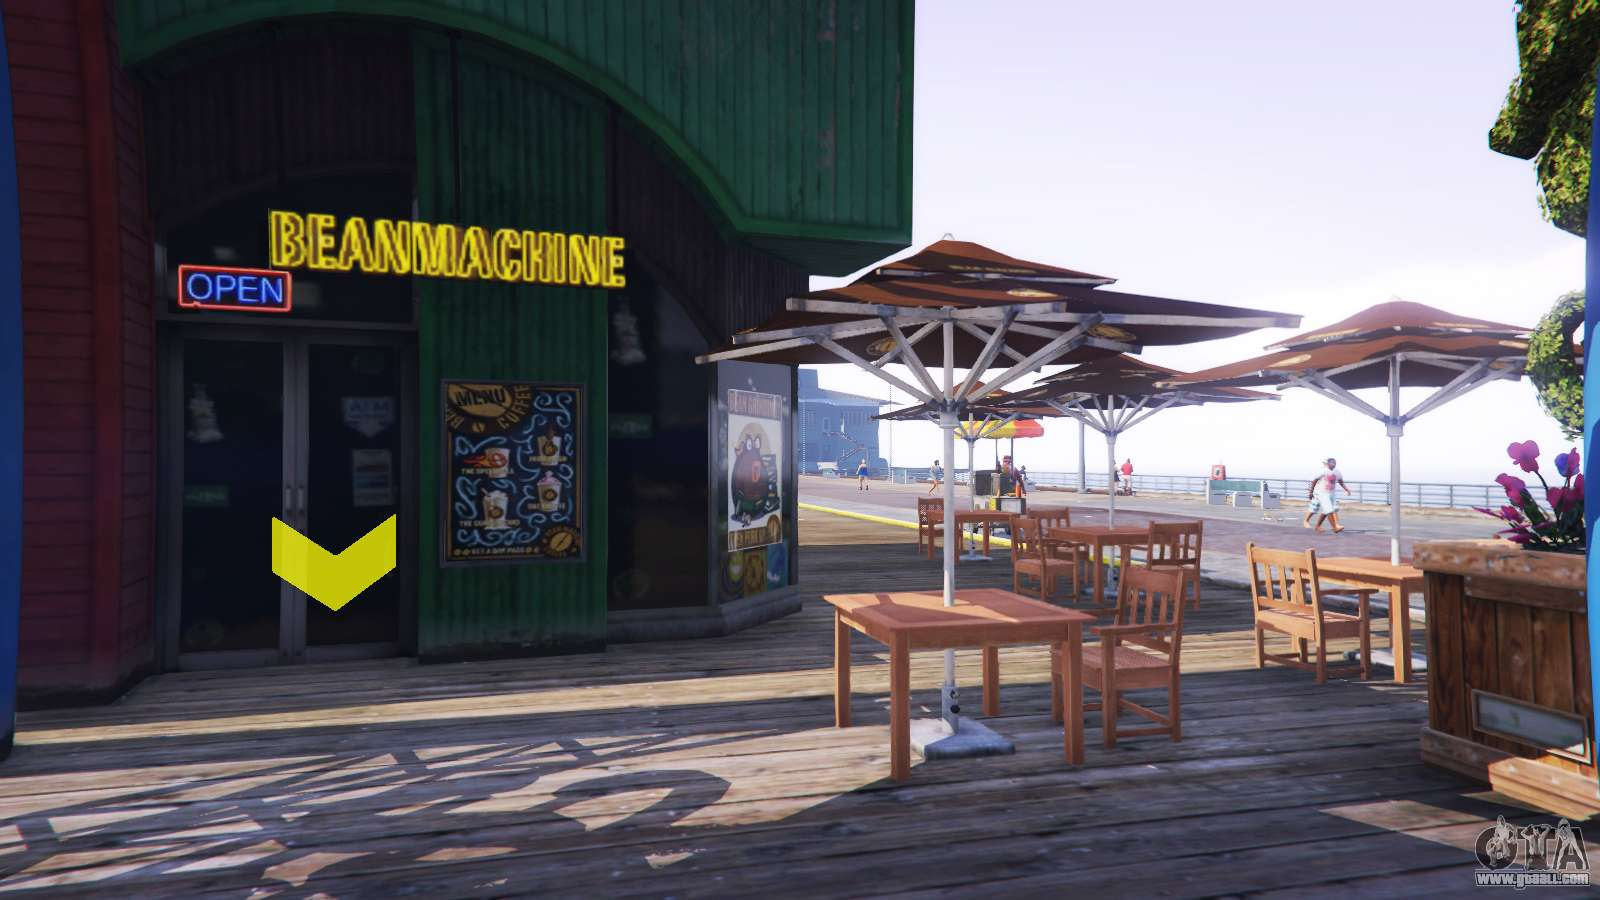 where to buy helicopters in gta 5 with 61887 A Coffee Shop on 65704 Premium Deluxe Motorsports Car Shop V23a1 as well Gta Online Where Find Helicopters To Steal as well Page 4 together with 616838 Airport Bus 550000 further 65704 Premium Deluxe Motorsports Car Shop V23a1.